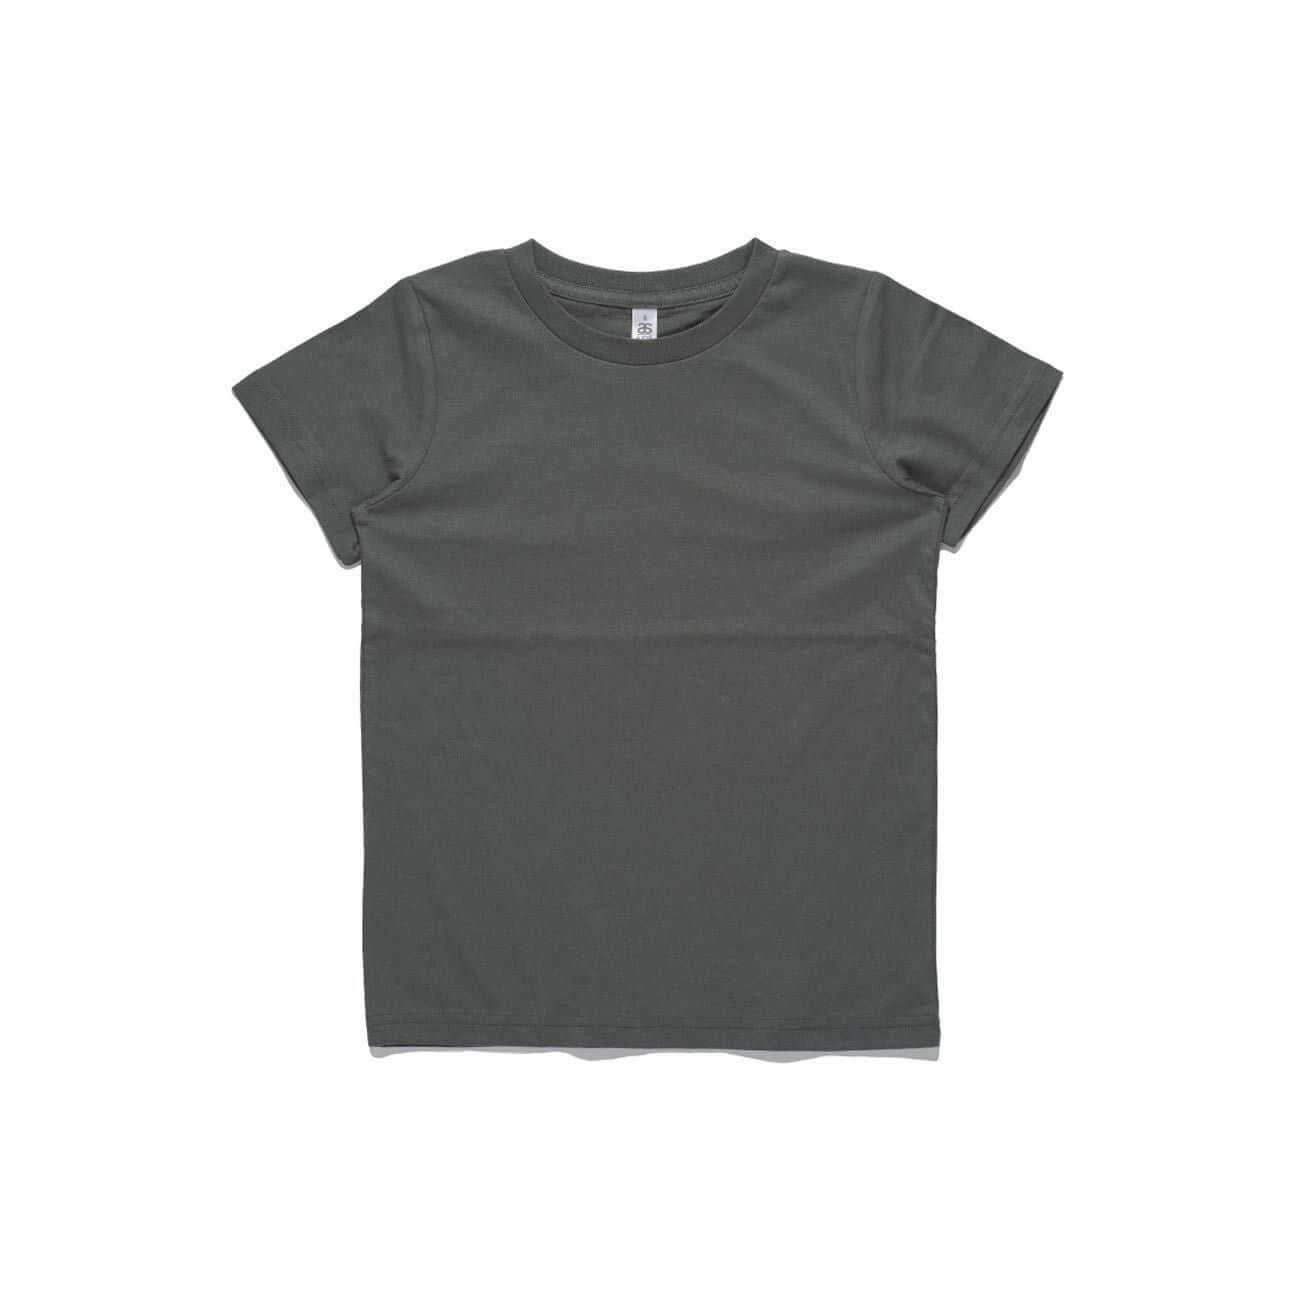 AS Colour Basic Kids Cotton Crew Neck Tee Shirt White, Navy, Coal and Grey Marl - Frankie's Story - 3